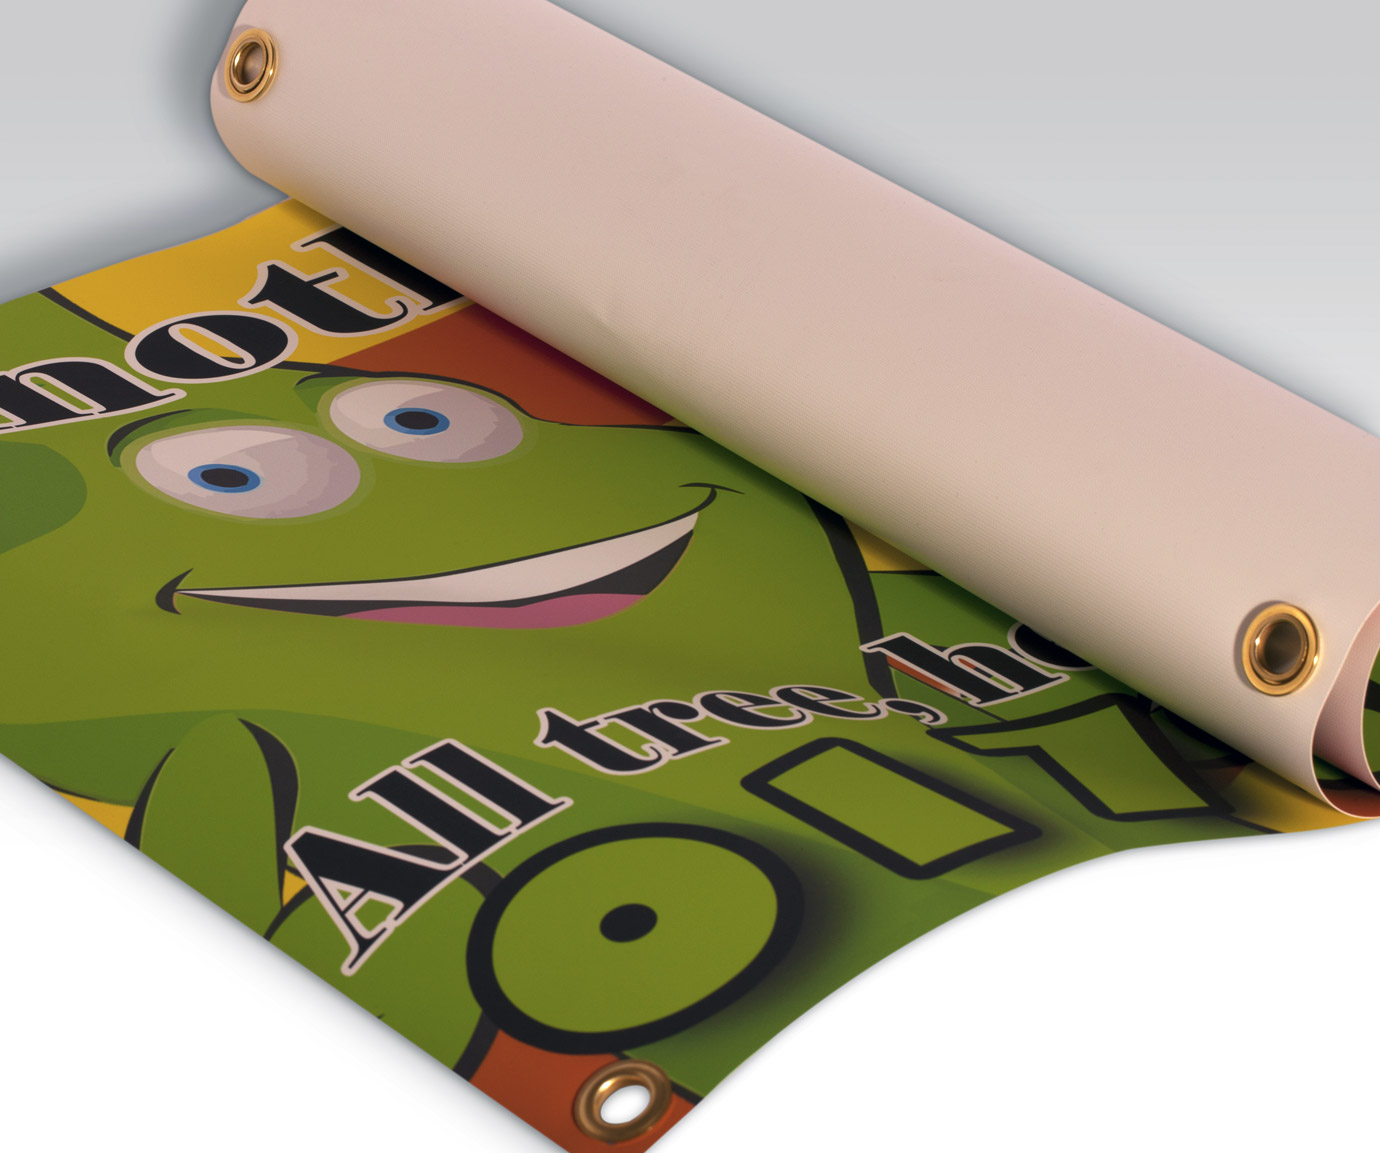 Banner Printing UK Cheap Vinyl PVC Banner Printing London - Vinyl banners with grommets